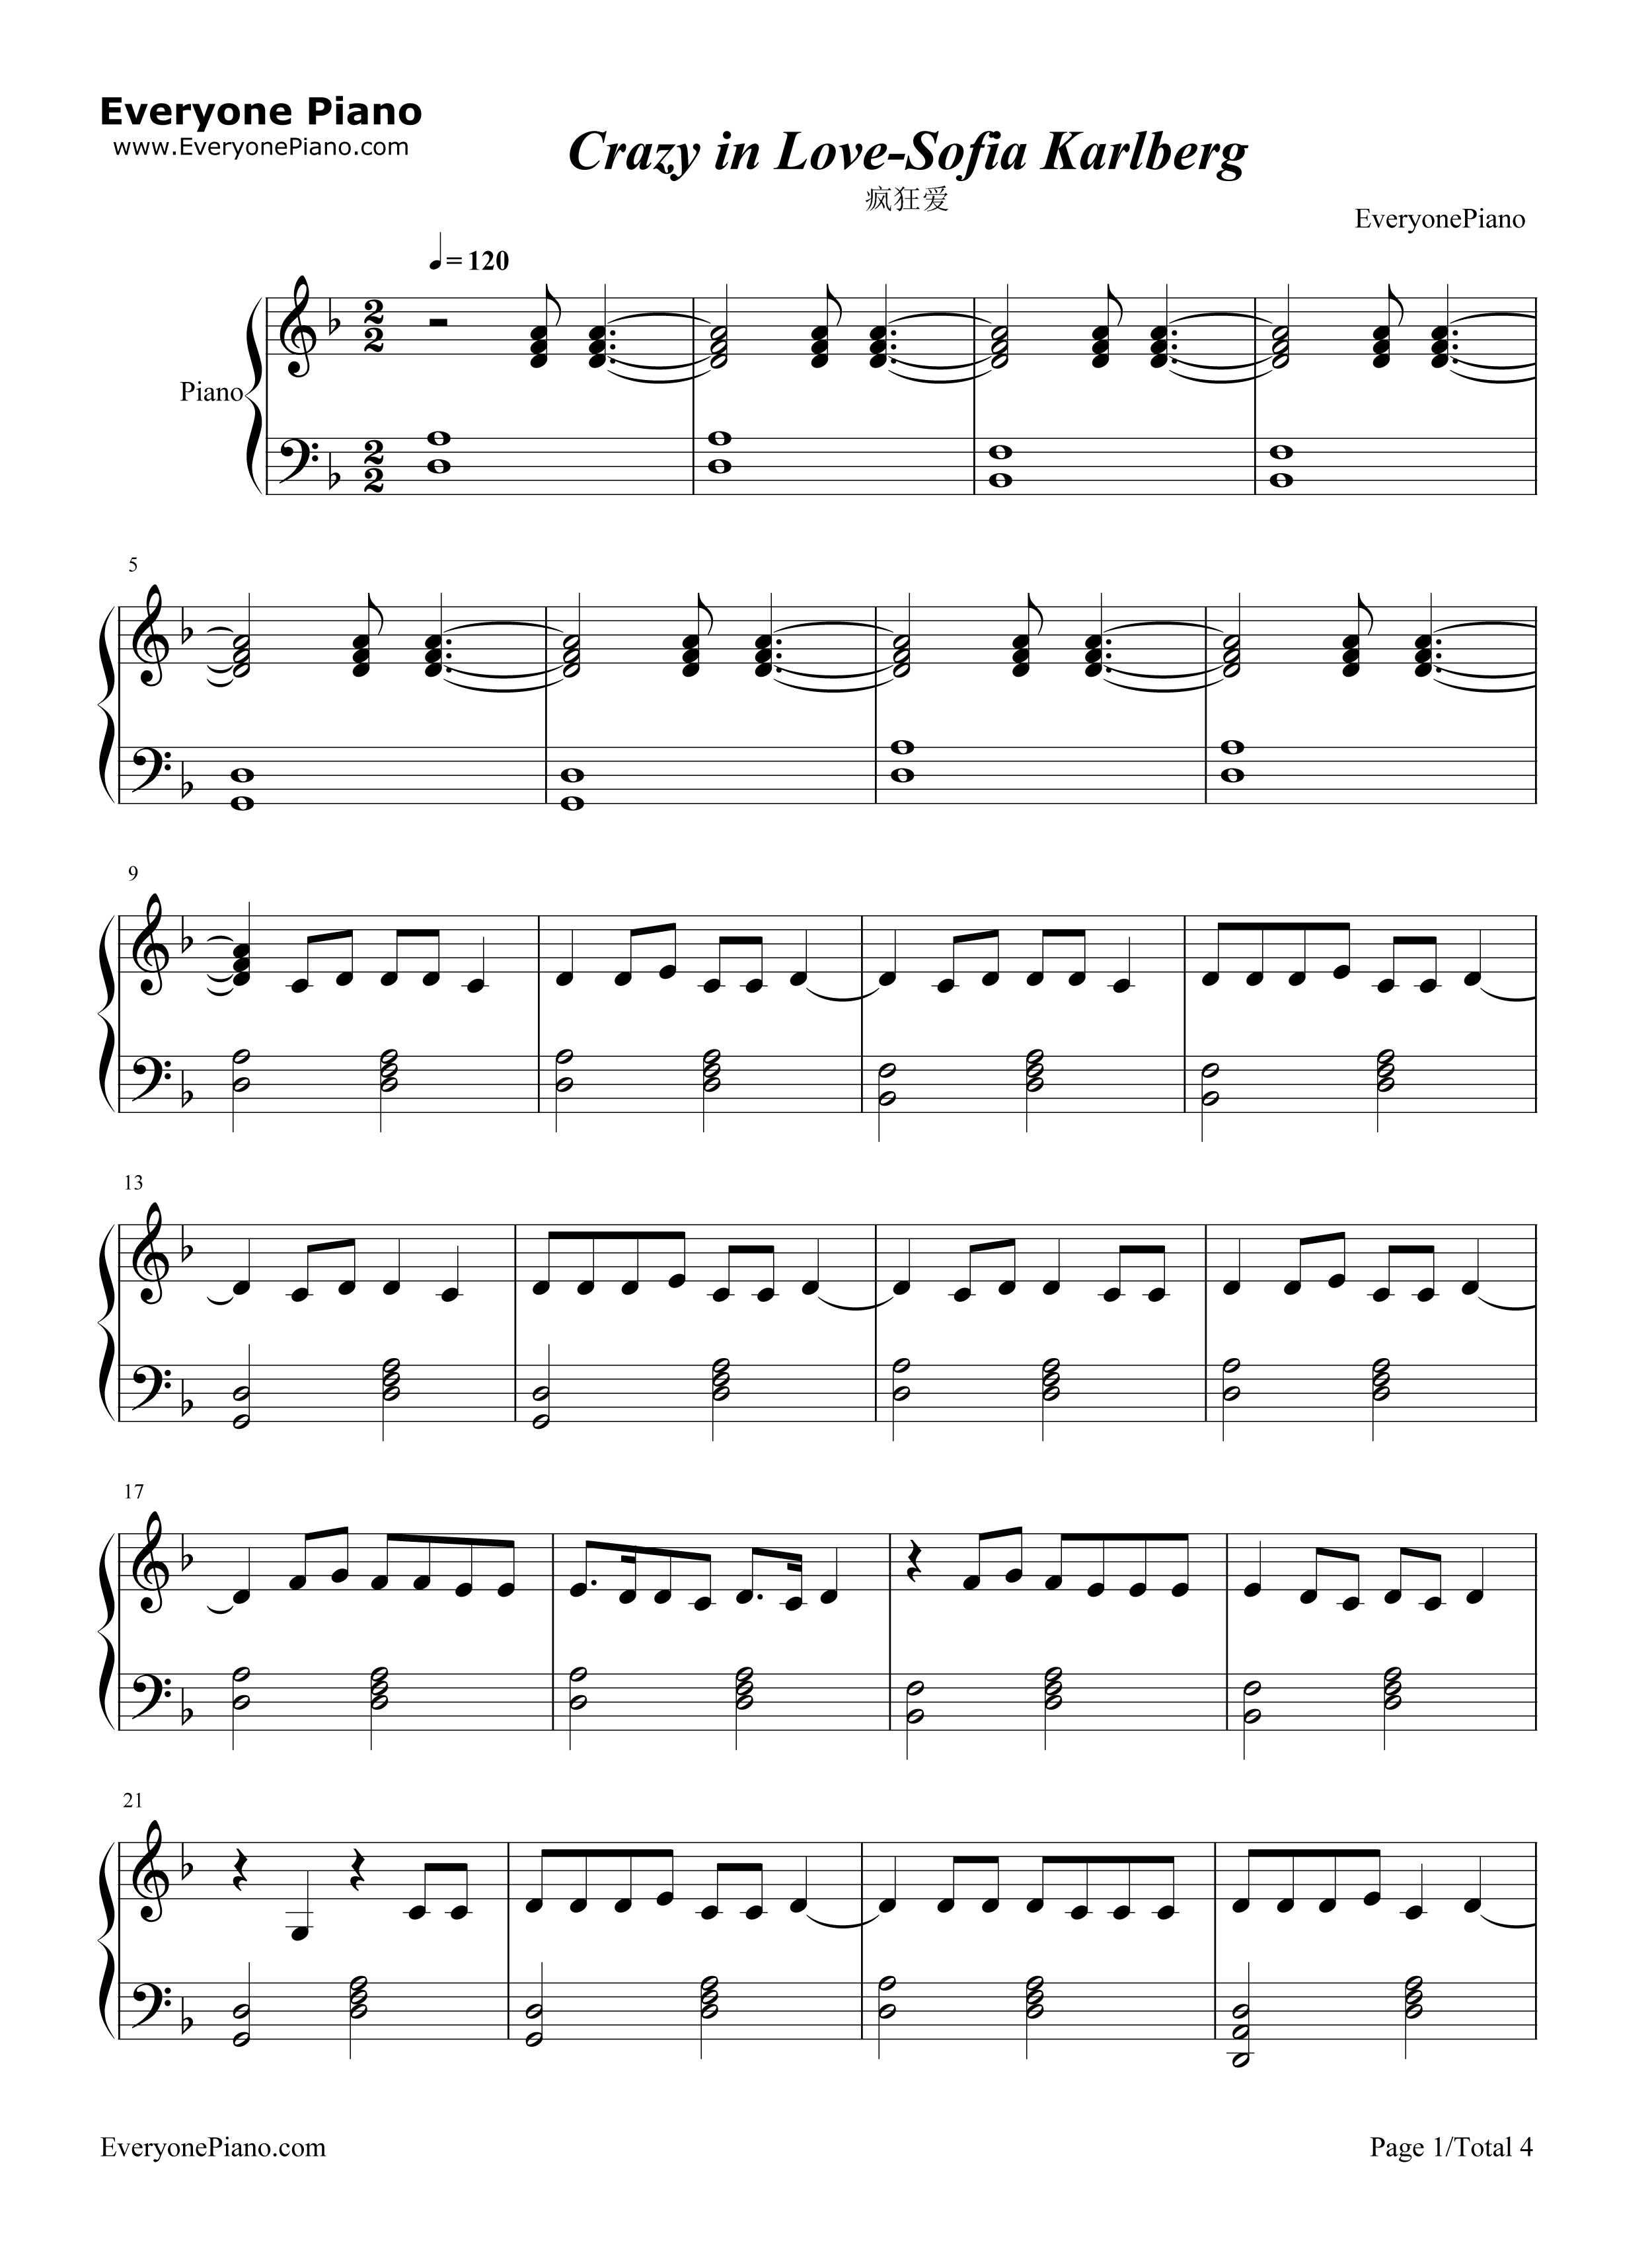 ... -Sofia Karlberg Stave Preview 1-Free Piano Sheet Music & Piano Chords